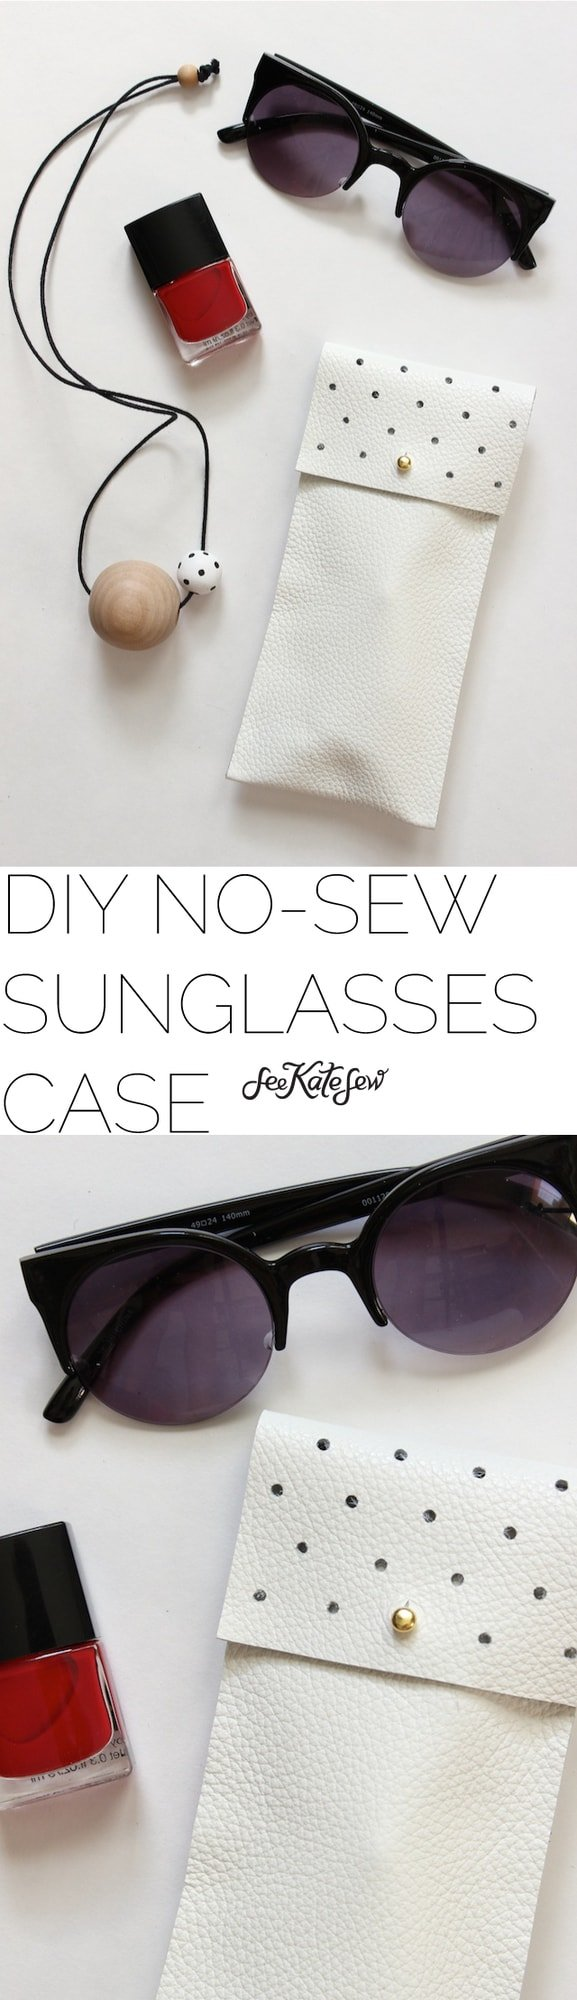 DIY No-Sew Sunglasses Case | See Kate Sew